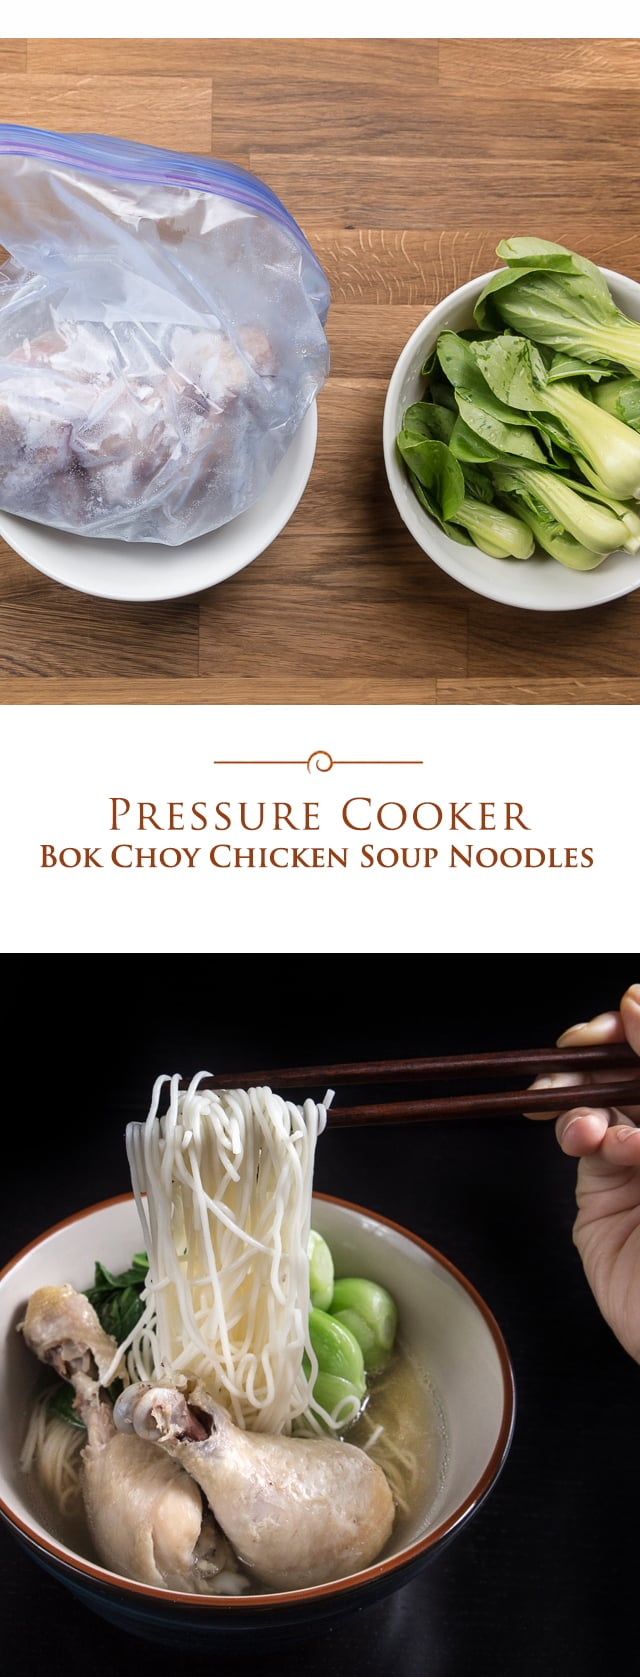 Pressure cooker chicken and noodles recipes